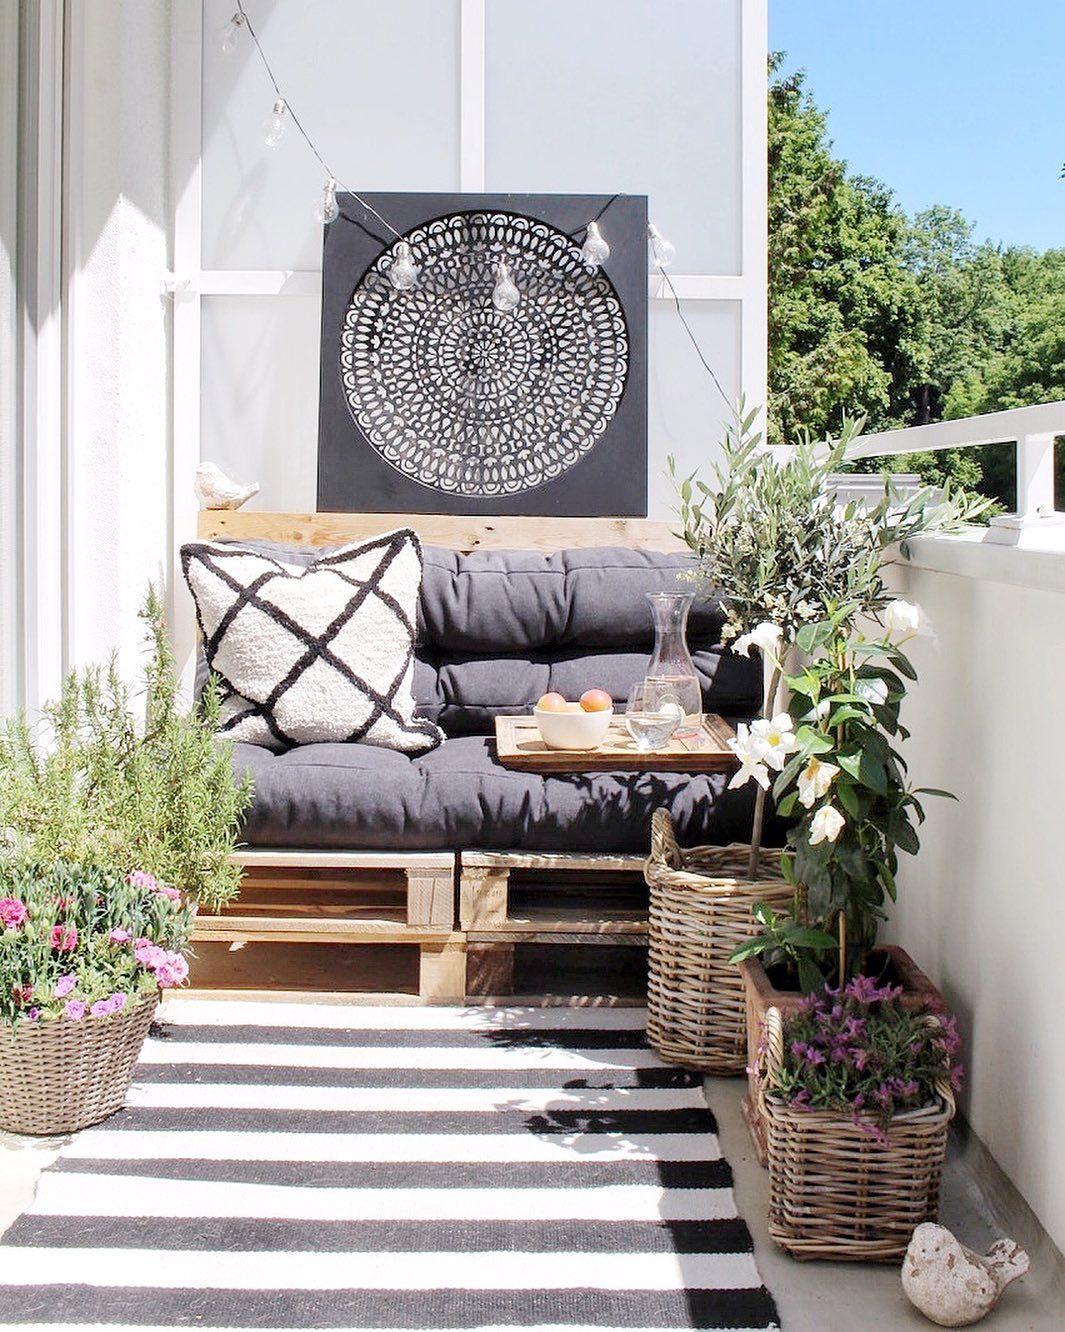 15 Ways To Make Your Small Balcony Space Feel Like